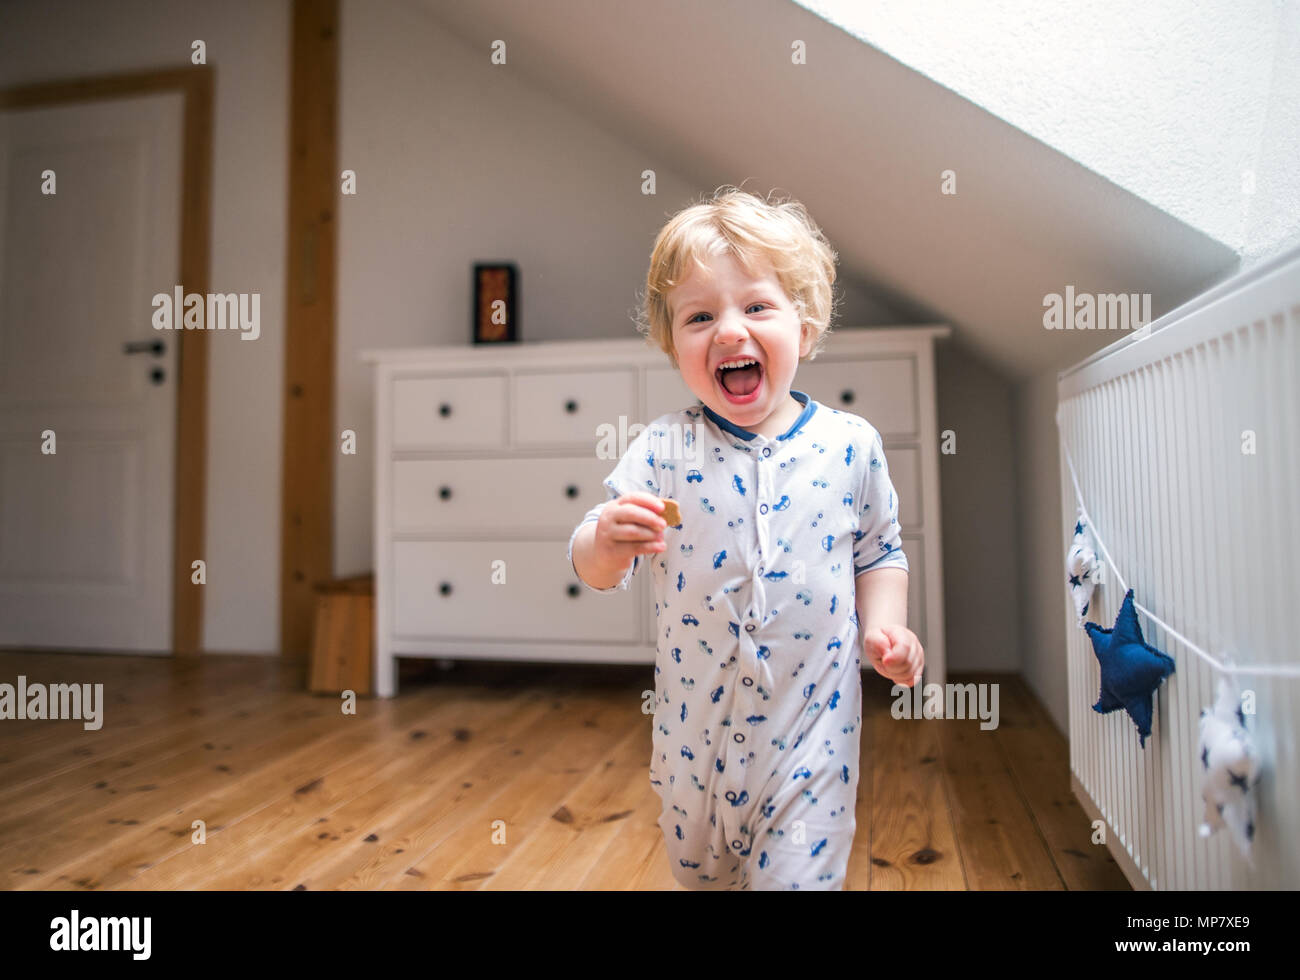 A toddler boy in the bedroom at home. - Stock Image